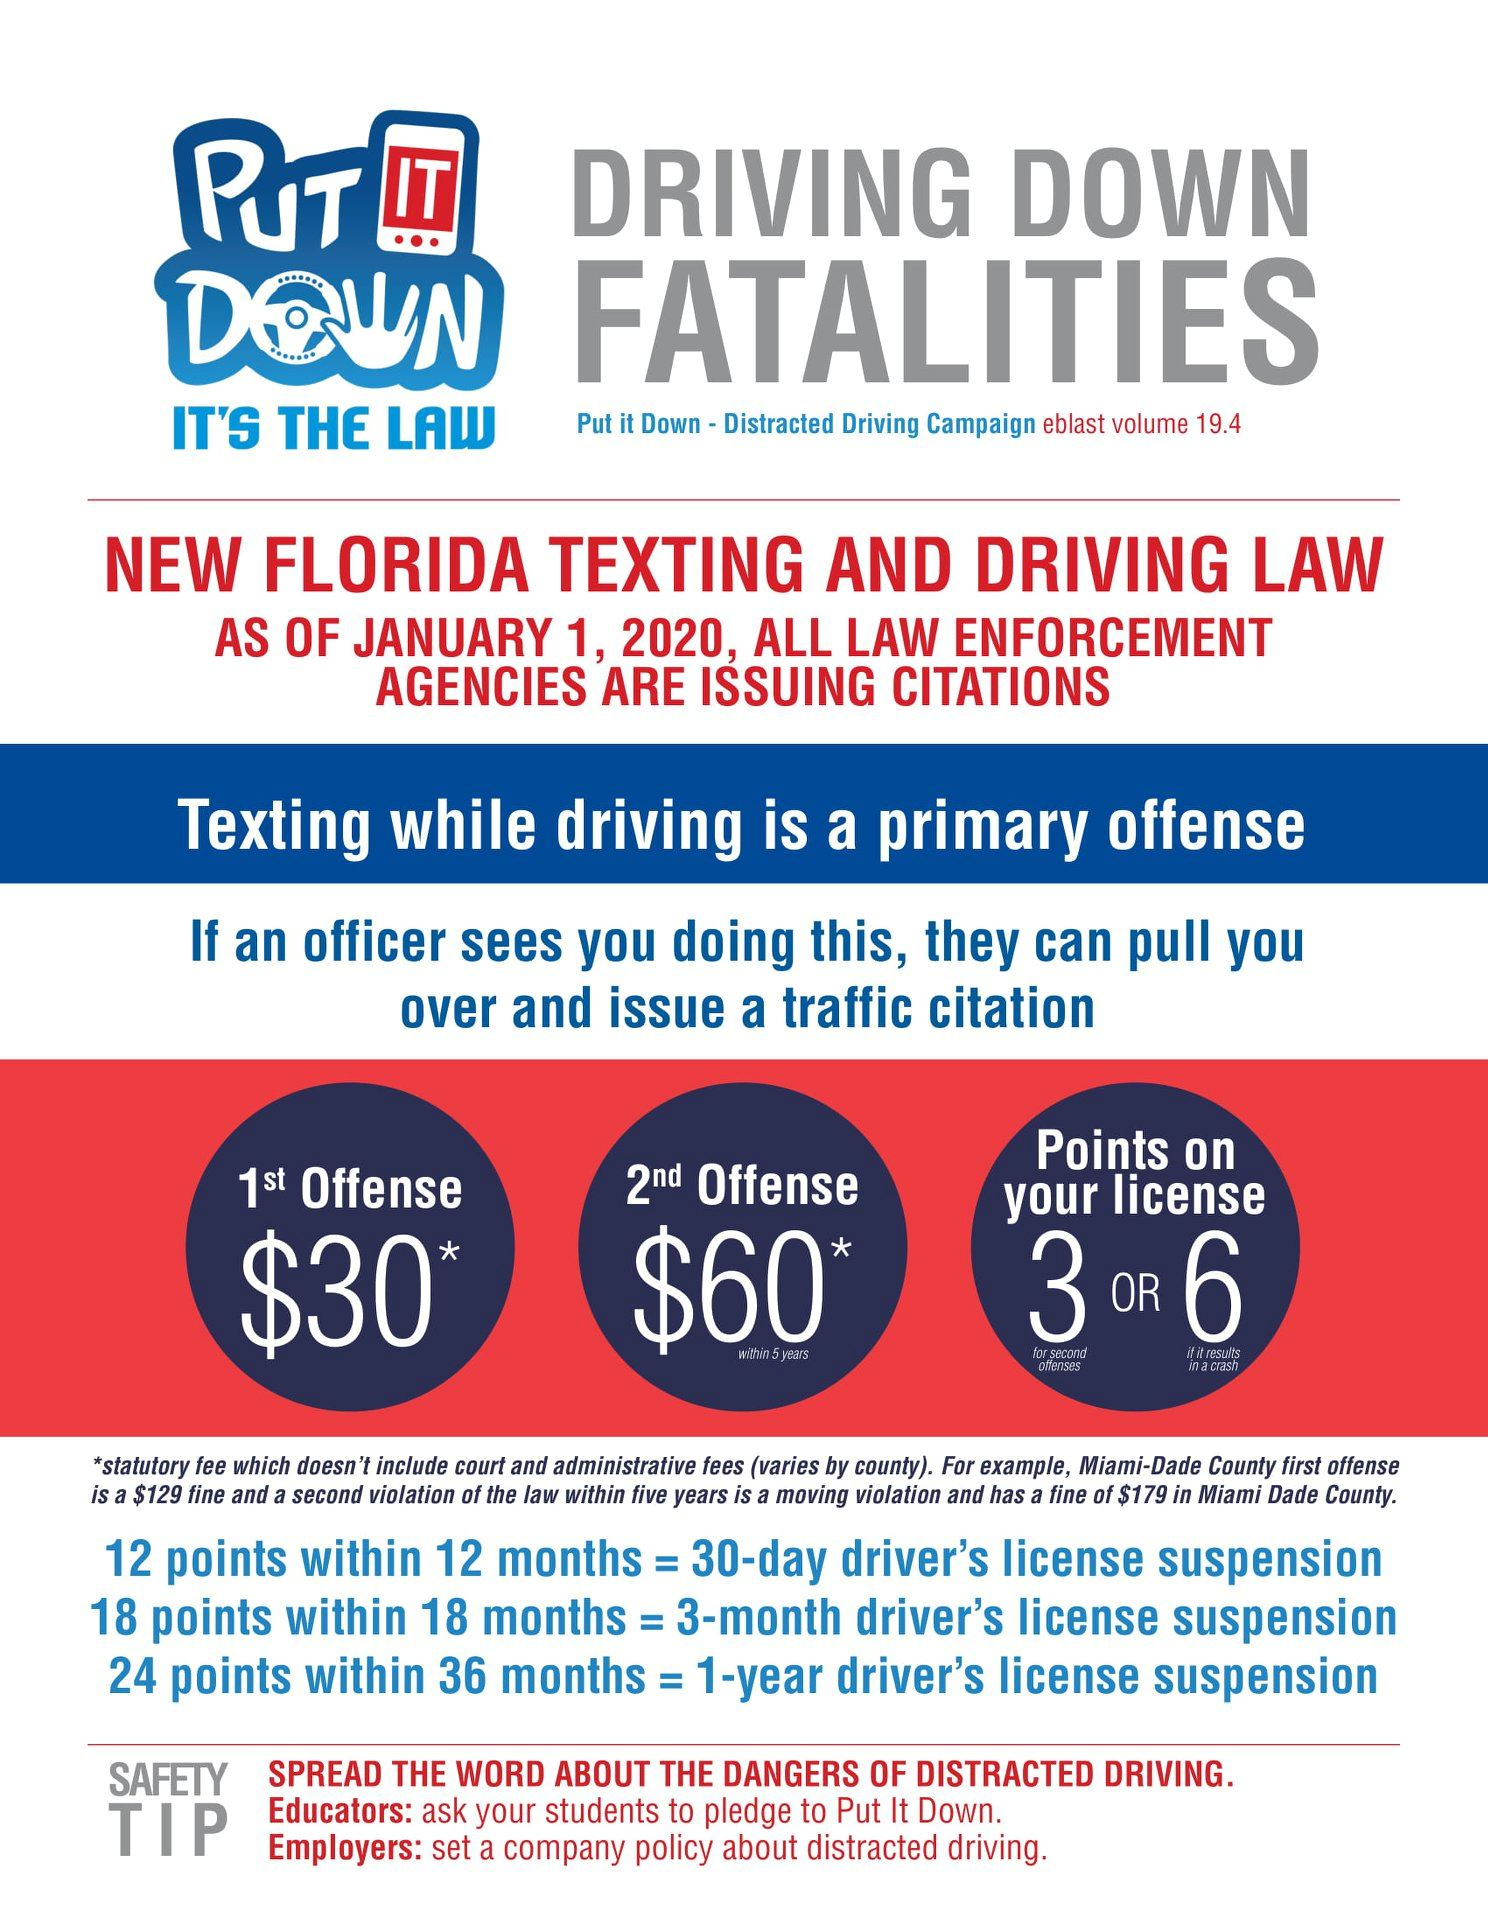 New Florida Texting and Driving Law Is In Effect: All Law Enforcement Agencies are issuing citations